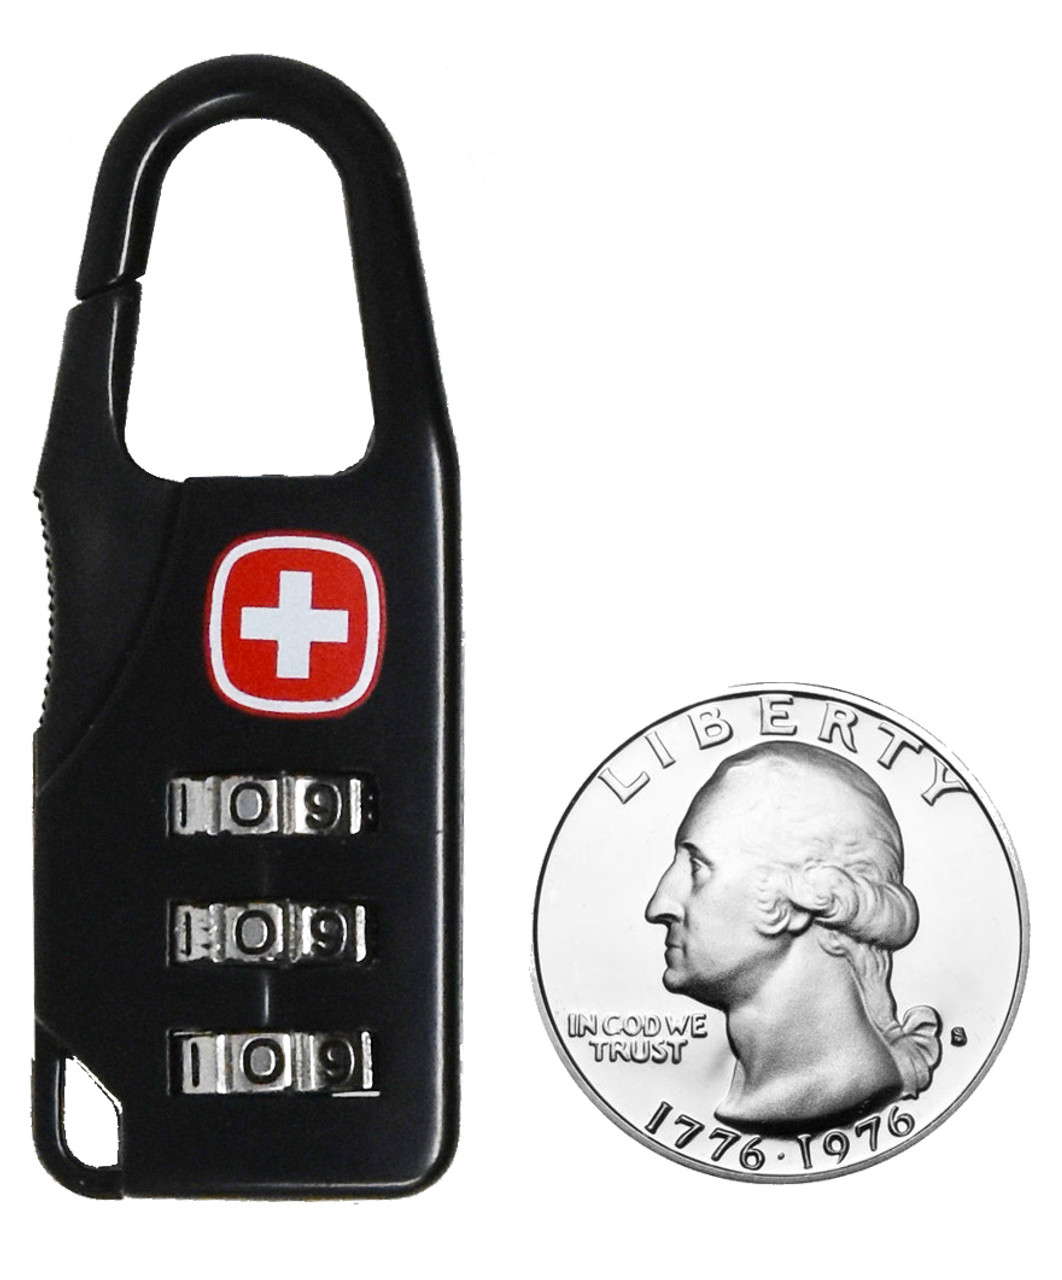 Swiss Army Combination Carabiner Style Lock For Tactical Gear and Travel Luggage